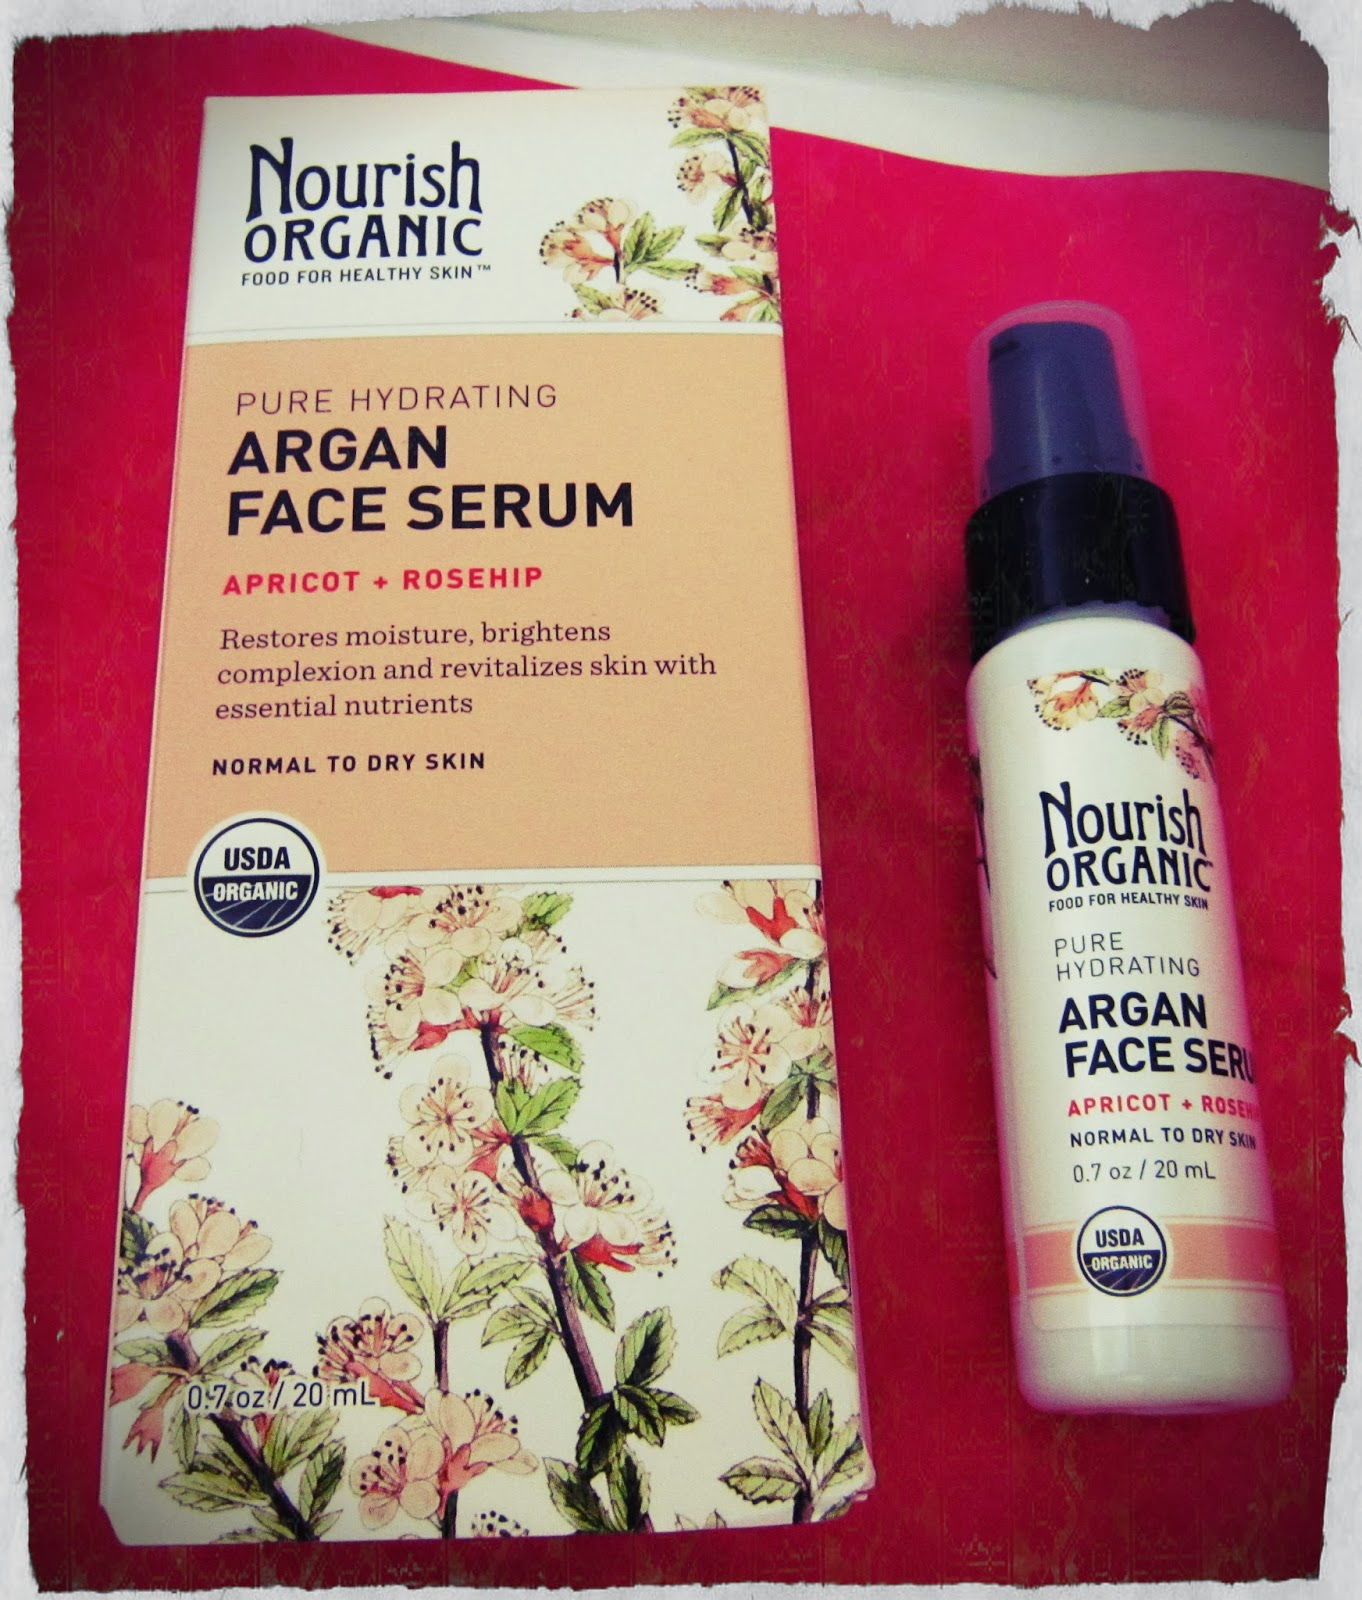 Nourish Organic Pure Hydrating Argan Face Serum,